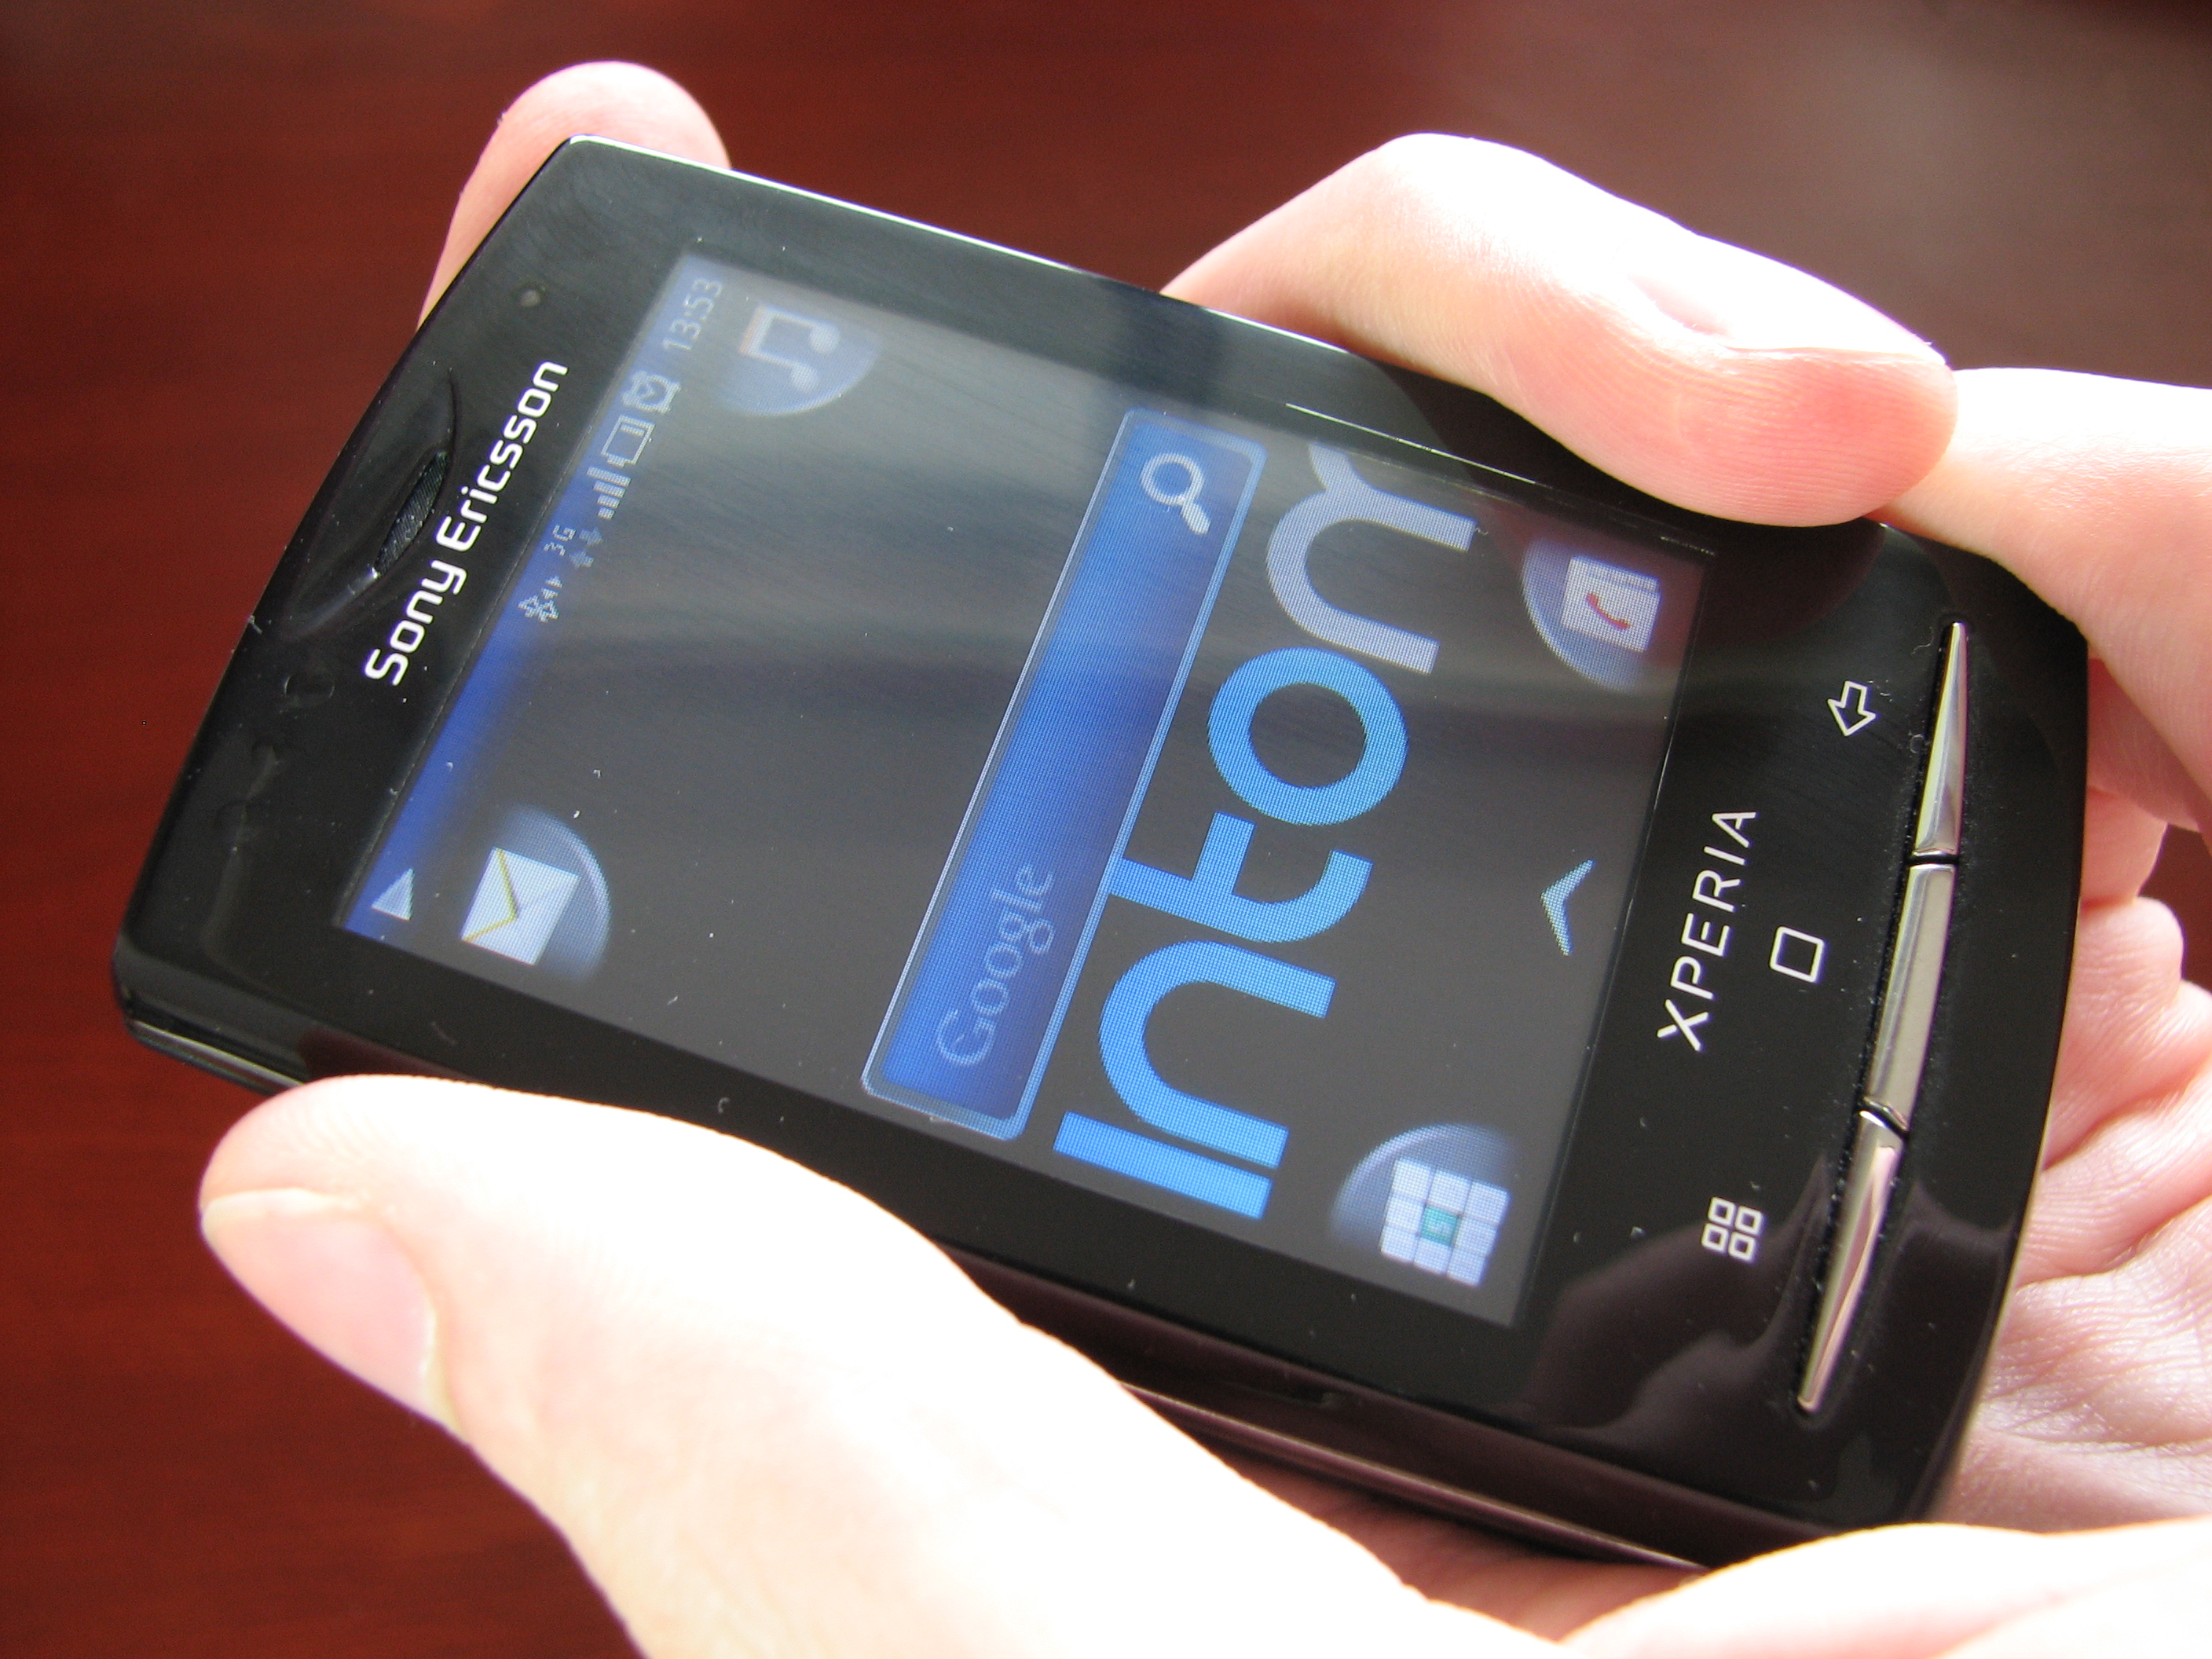 Time sony ericsson xperia mini pro review price in india Surface